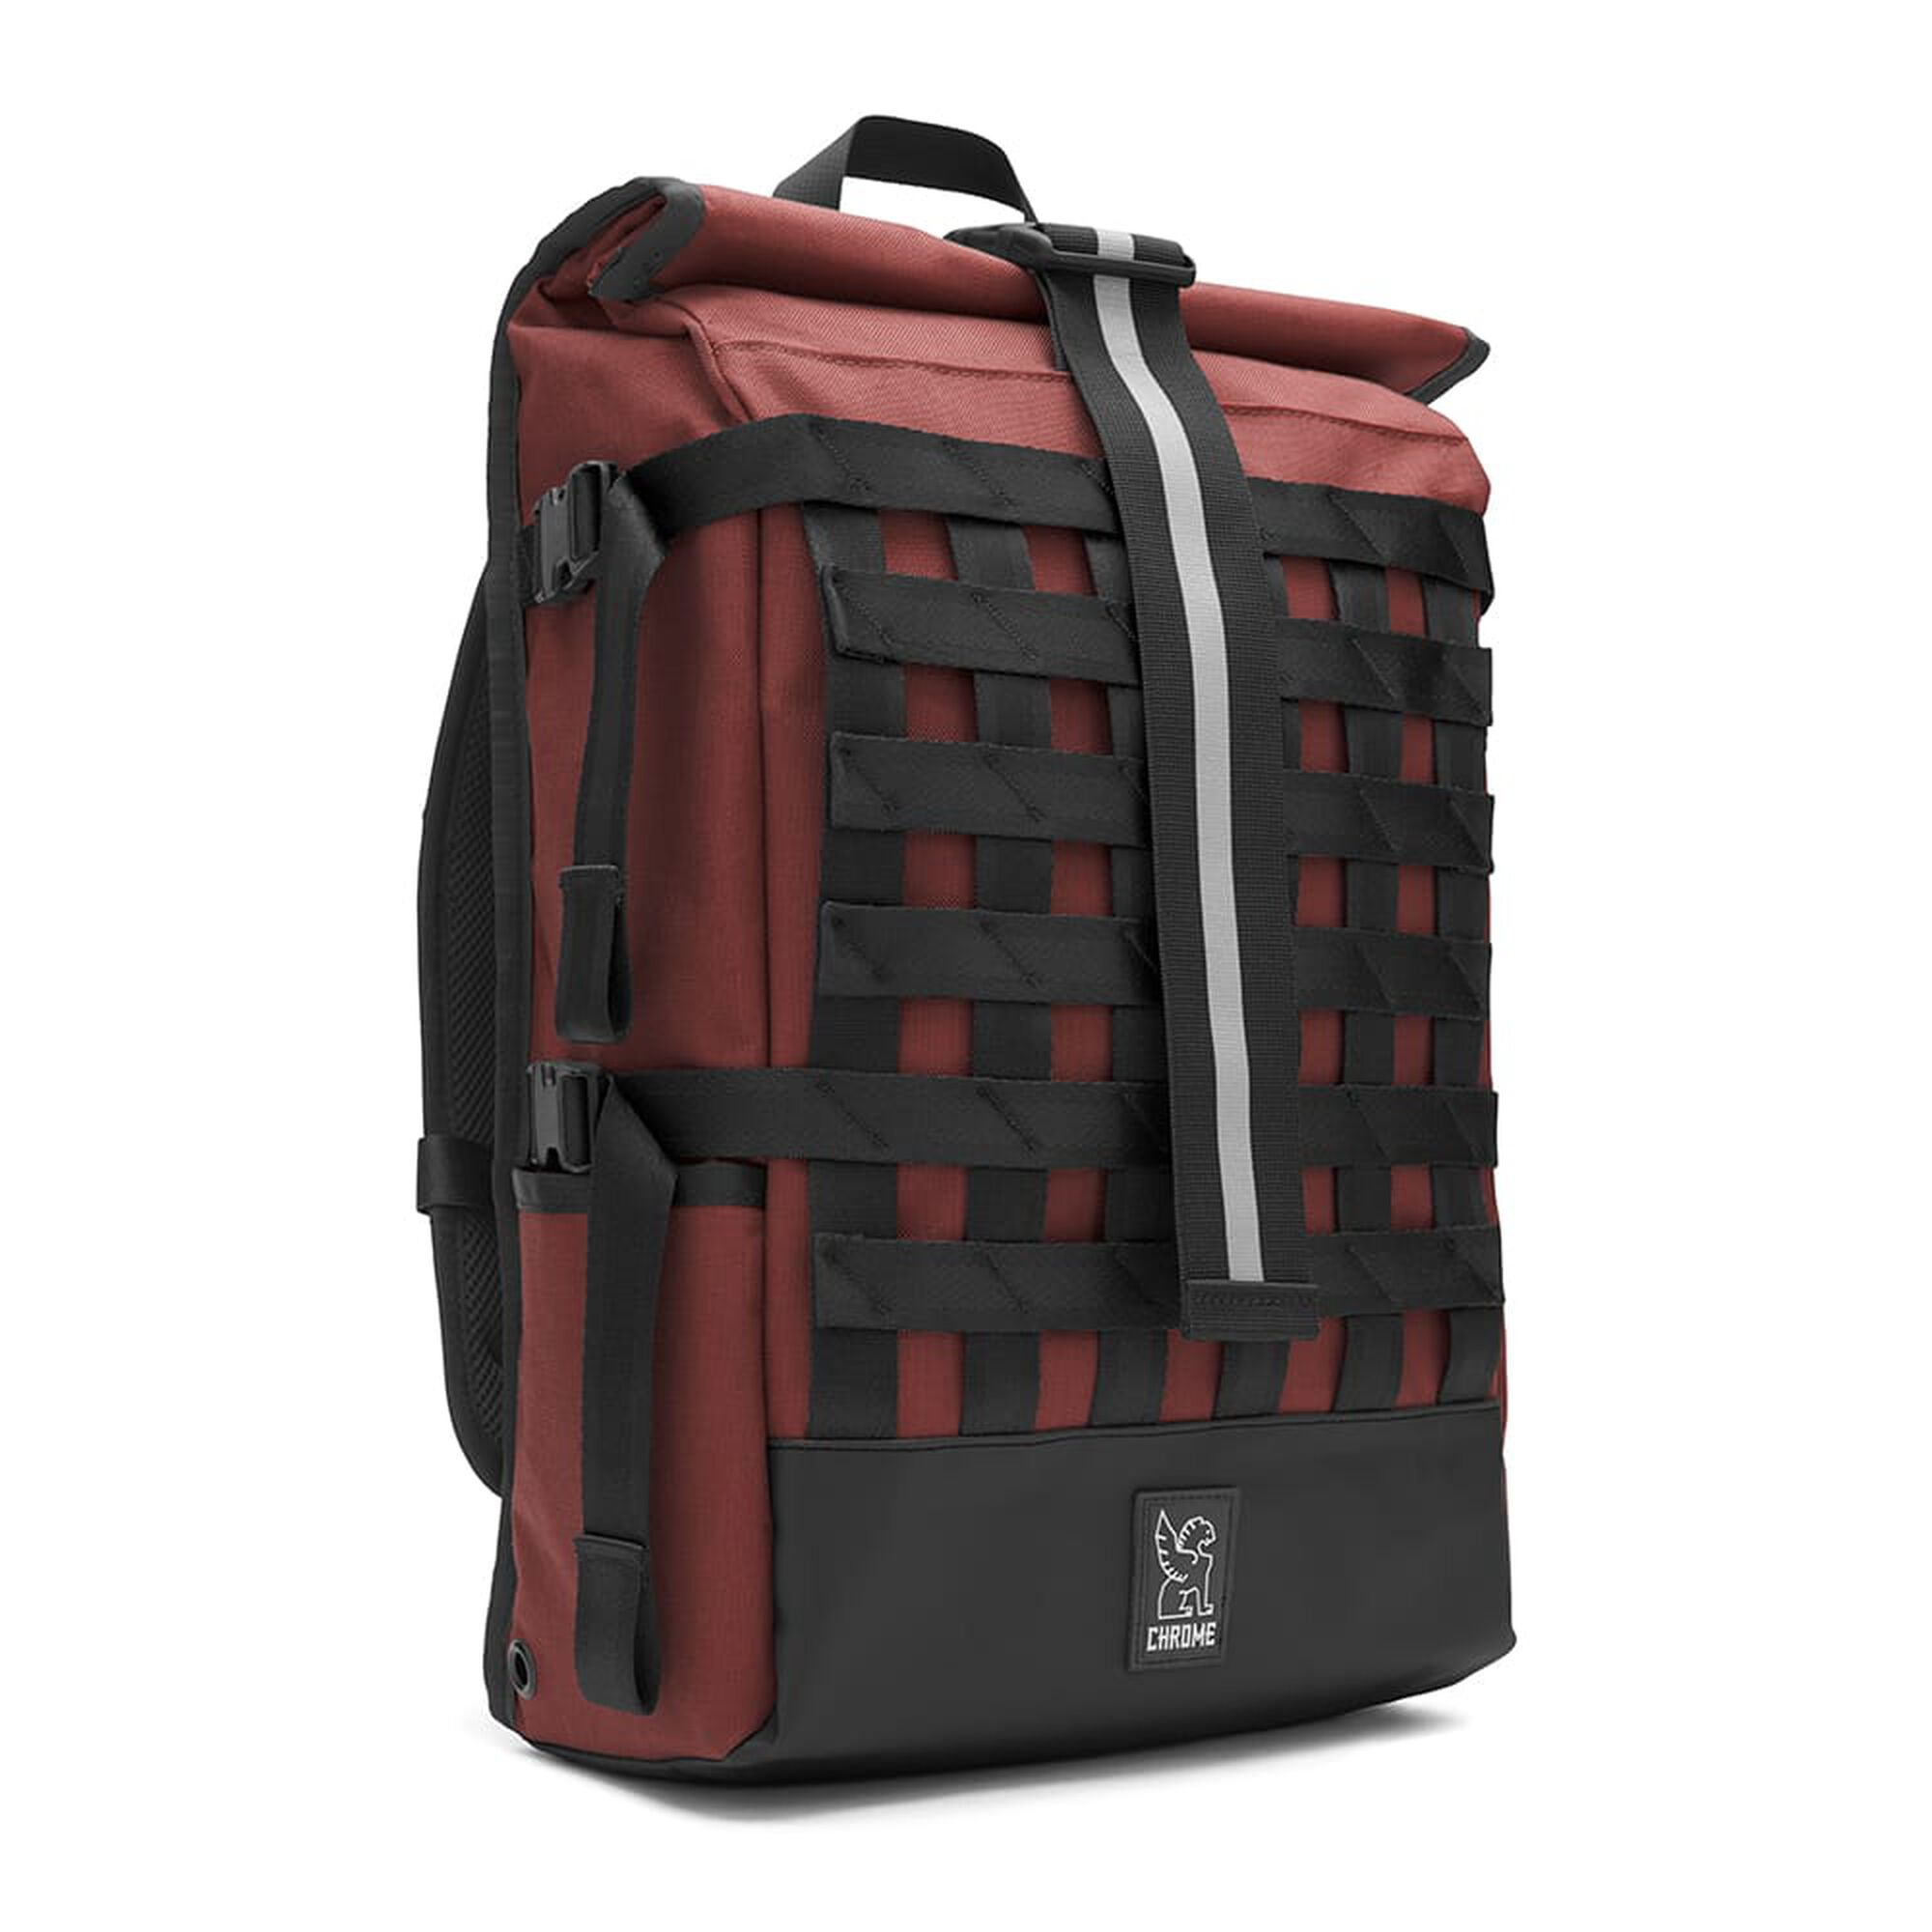 e04928bc77c1 Barrage Cargo Backpack - Fits laptops up to 15